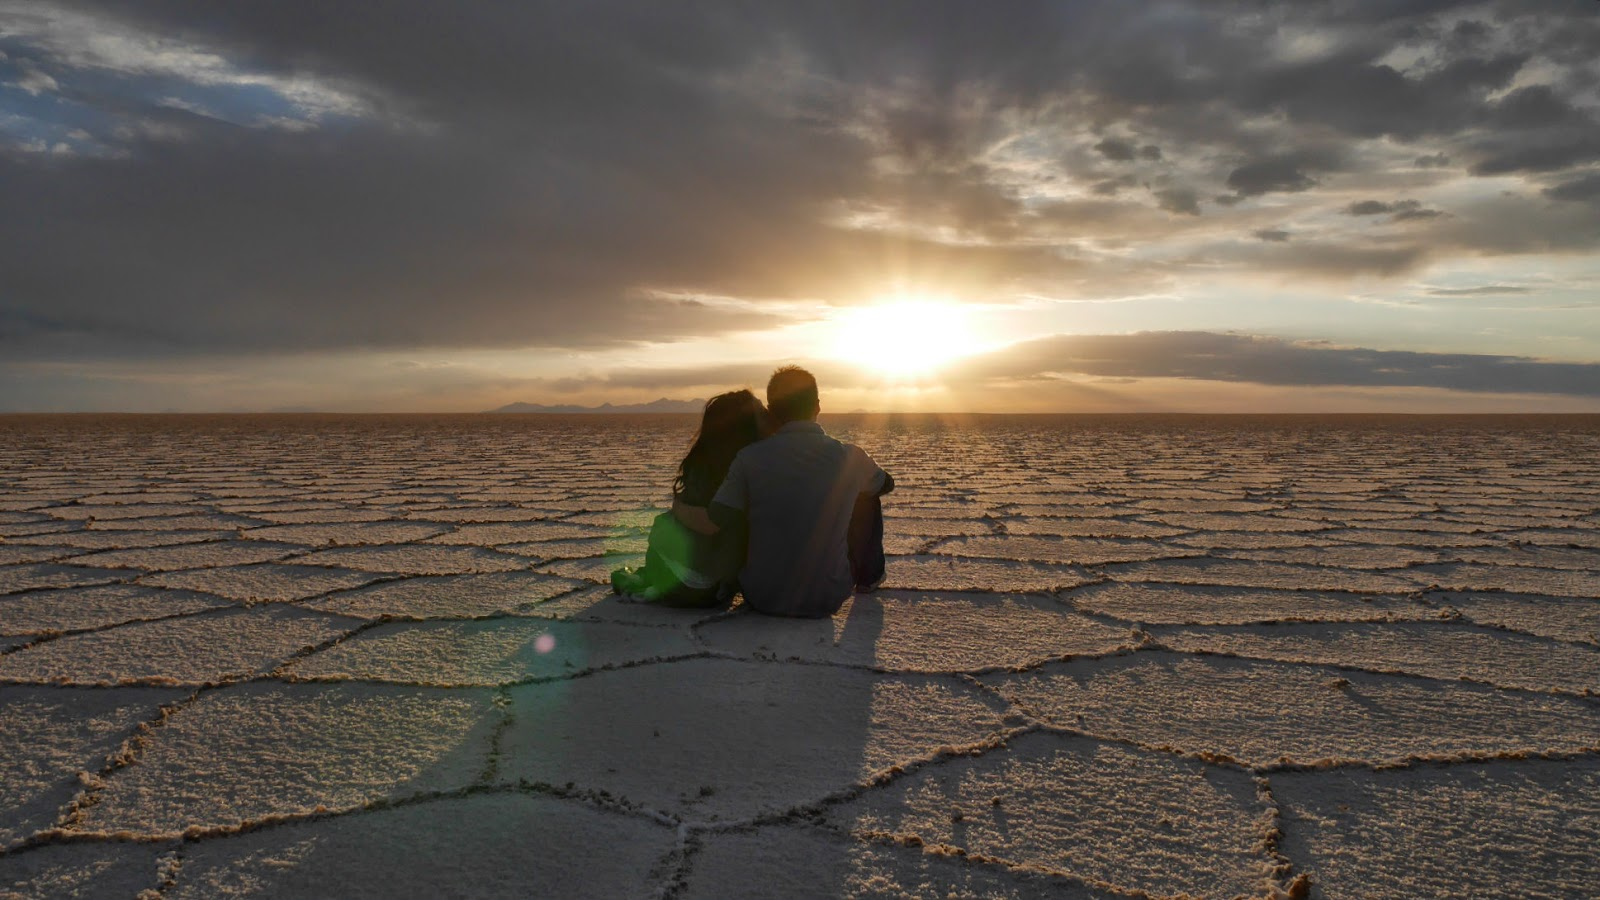 Sunset at the Salar de Uyuni, Bolivia